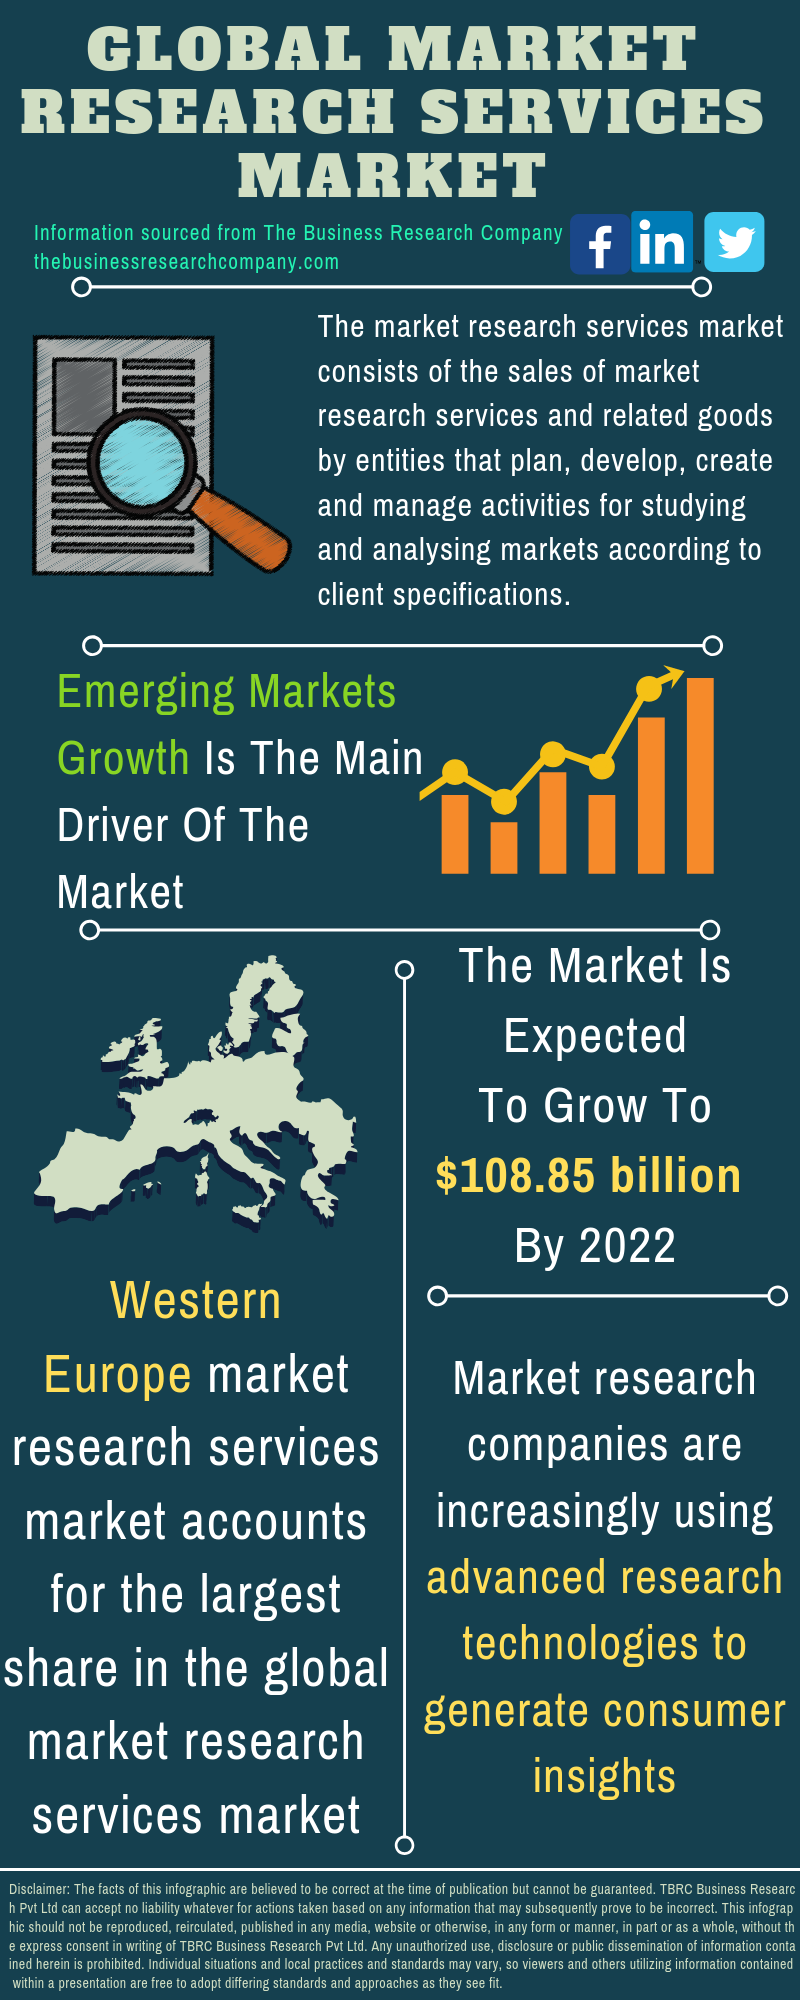 MarketResearch Services Market